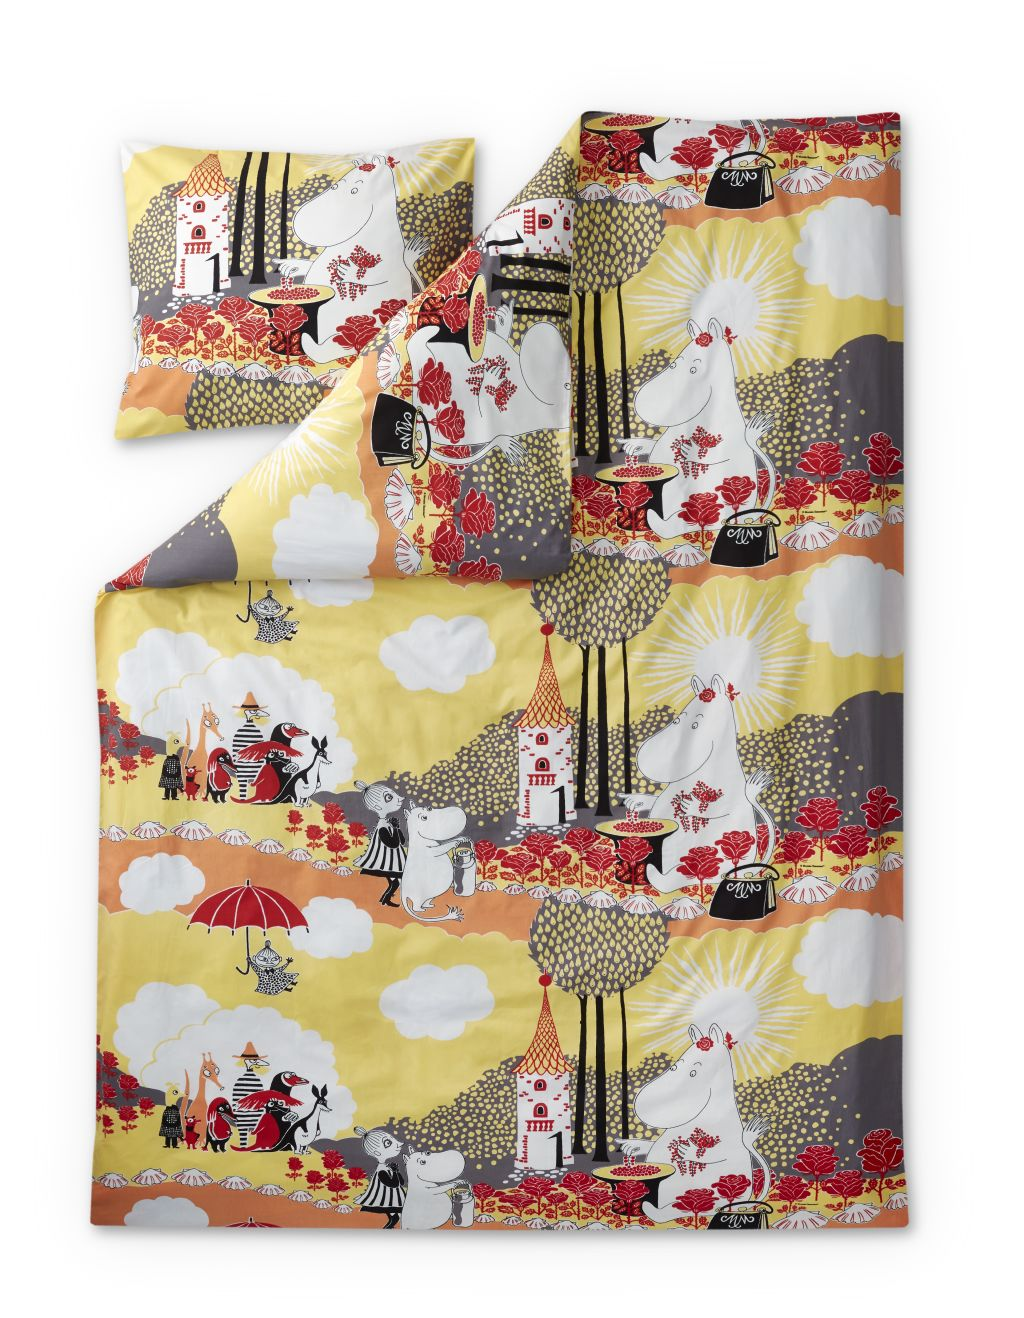 Finlayson DUVET COVER +  PILLOWCASE ROSE MOOMIN YELLOW 150X210+50X60